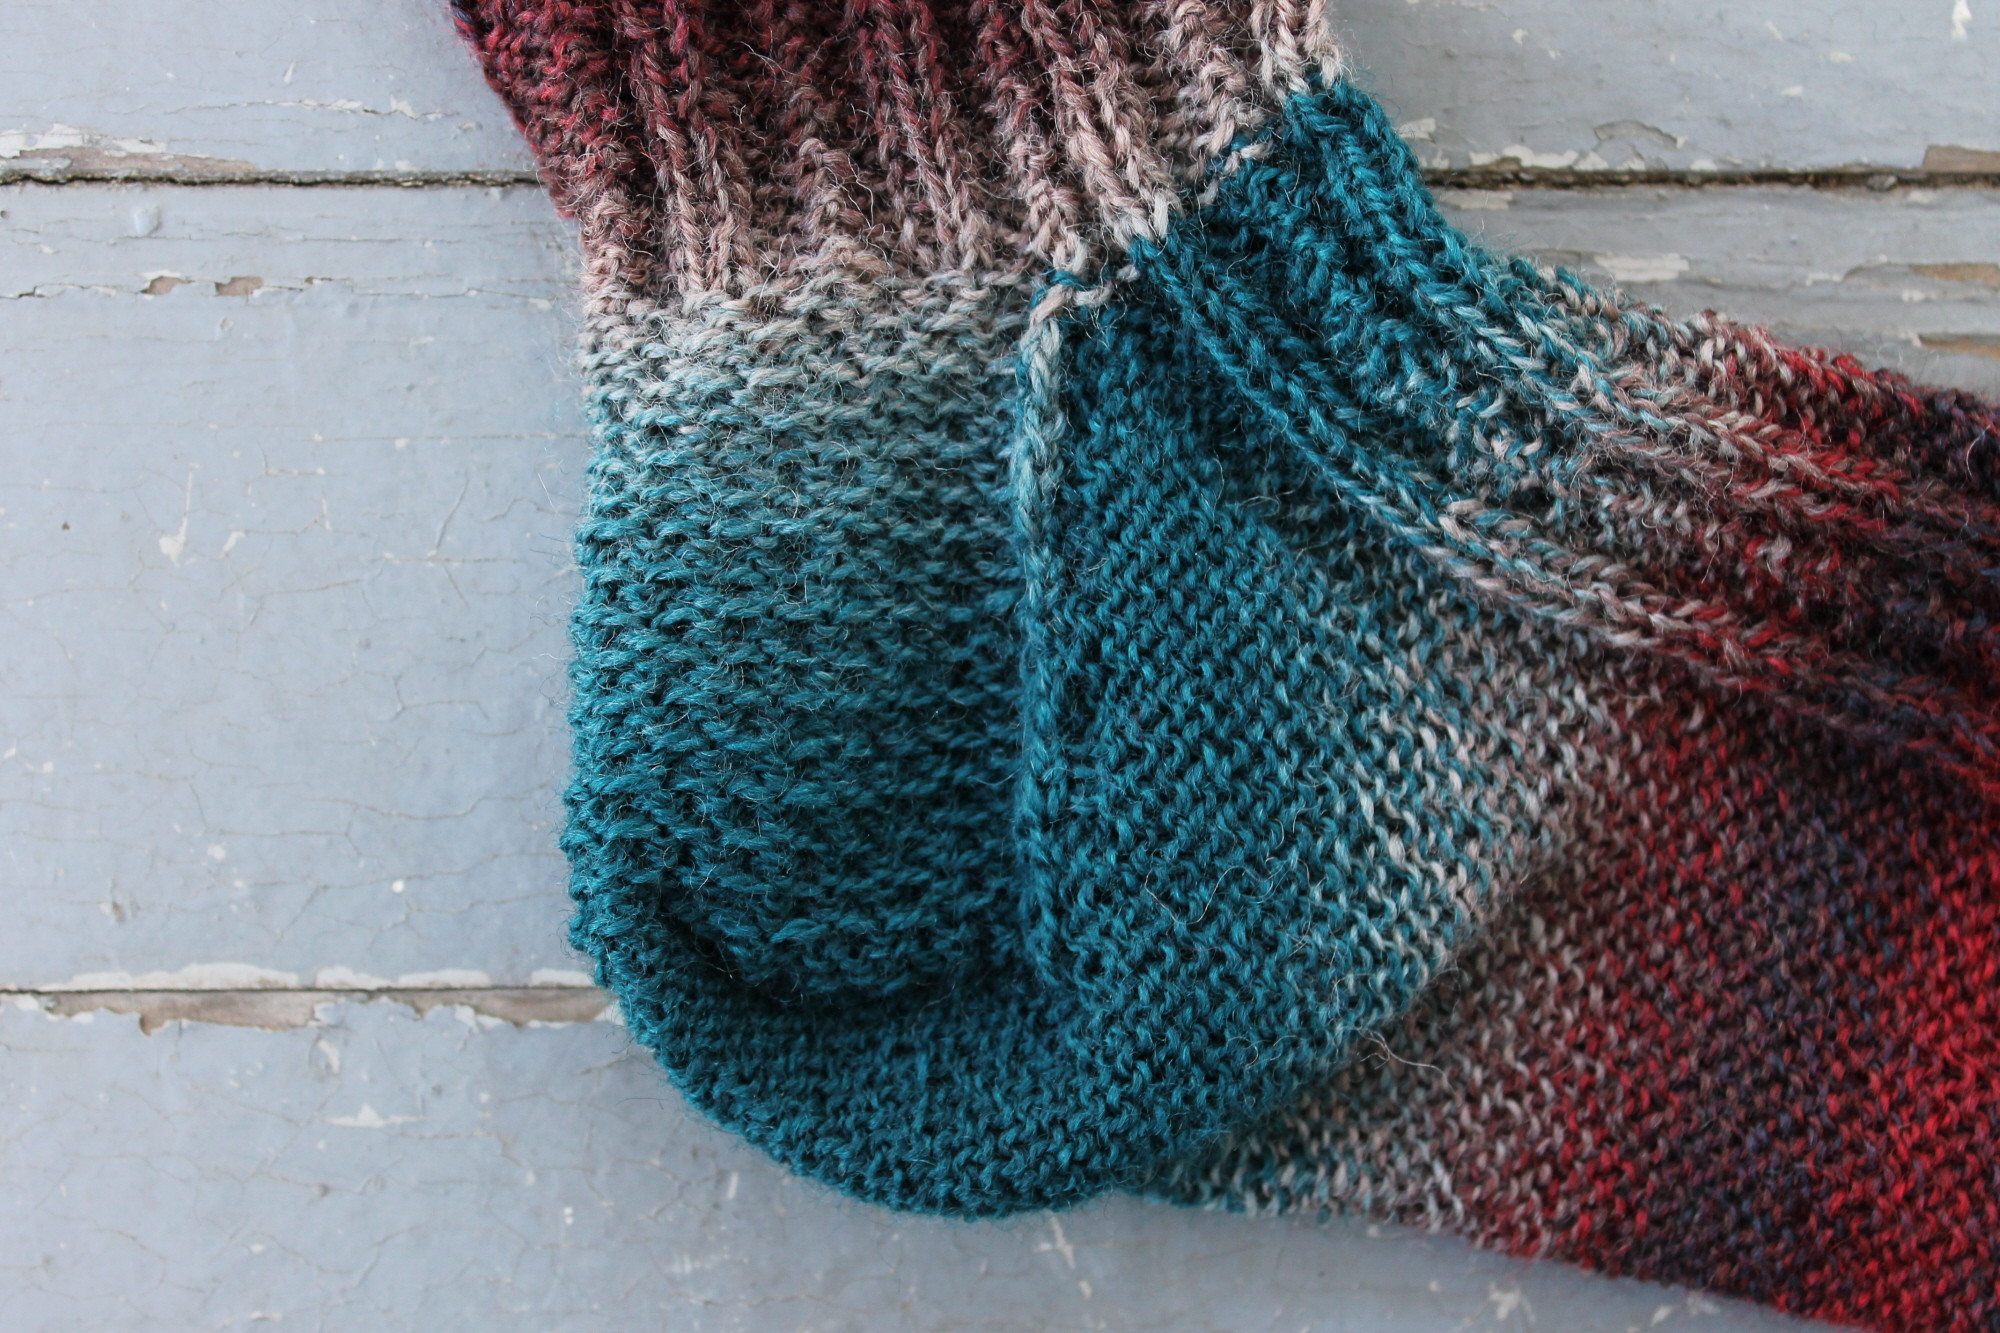 Sock Knitting Pattern Lovely sock Skills How to Knit A sock Heel On Craftsy Of Unique 41 Photos sock Knitting Pattern